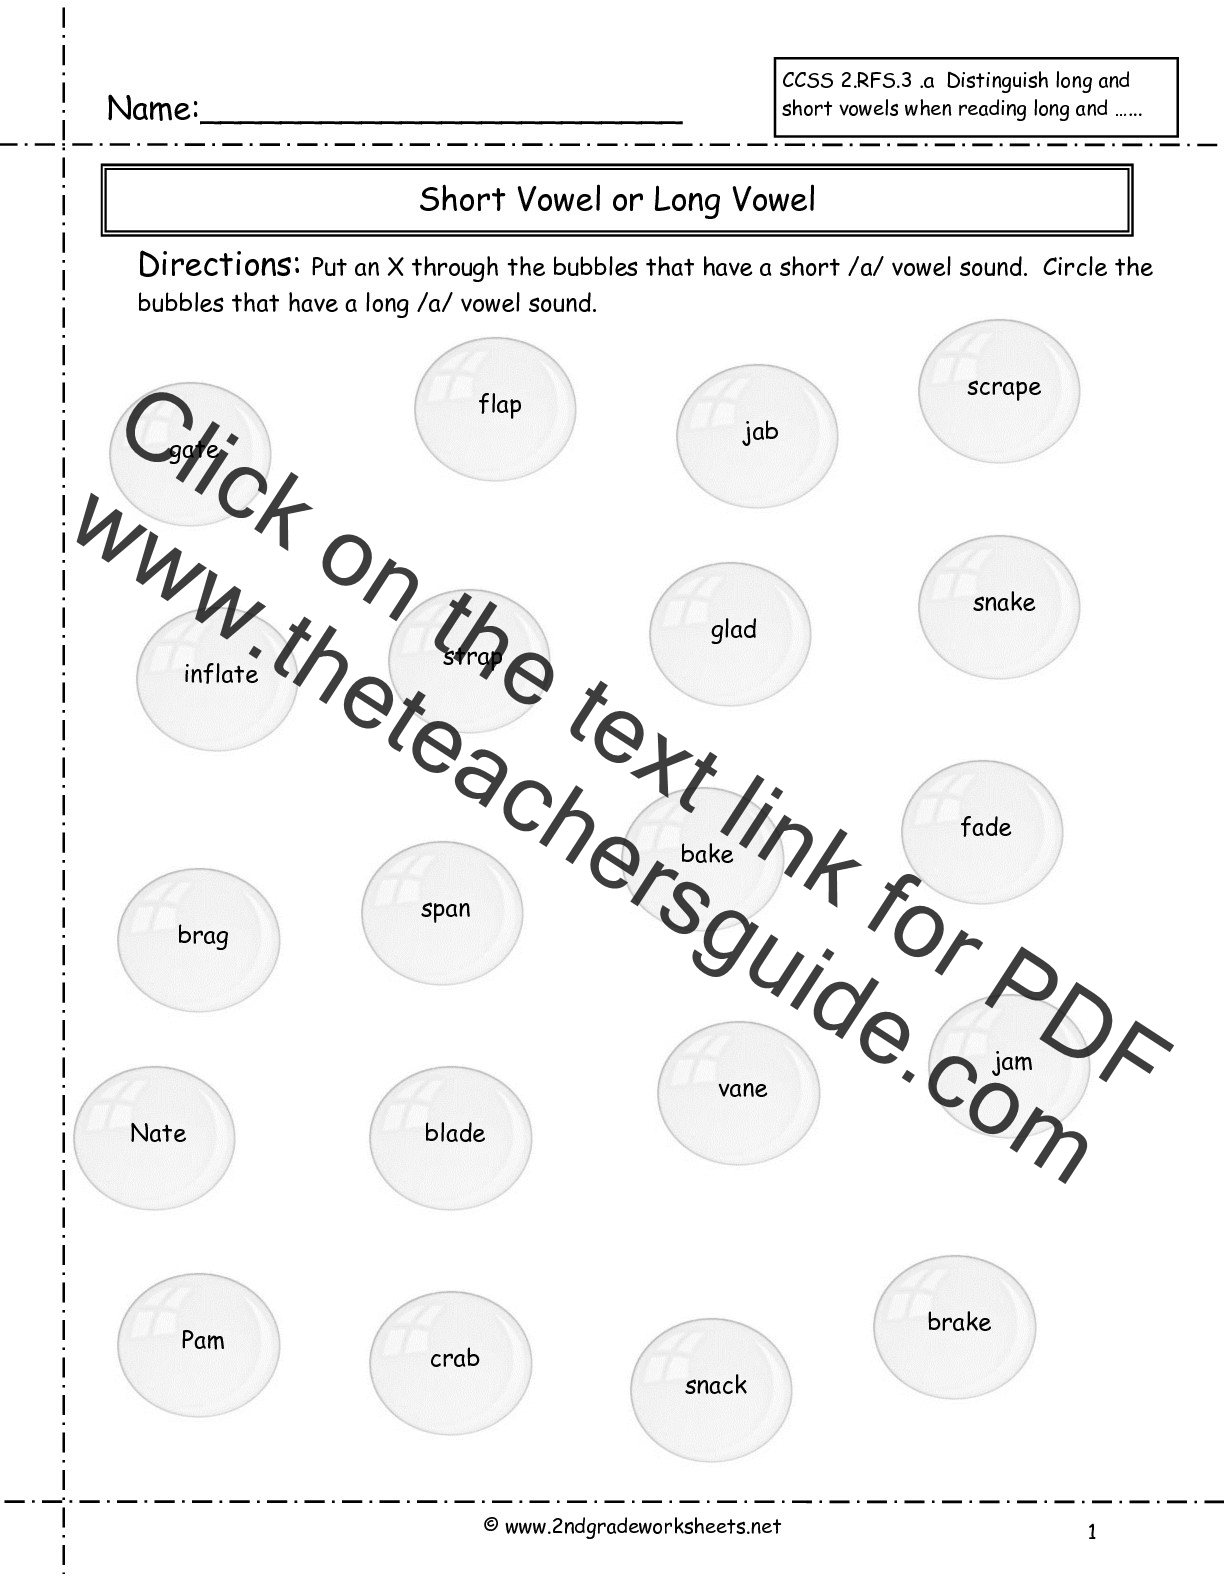 Free Worksheet Long And Short Vowel Worksheets second grade phonics worksheets and flashcards worksheet long short a bubble pop i o u b